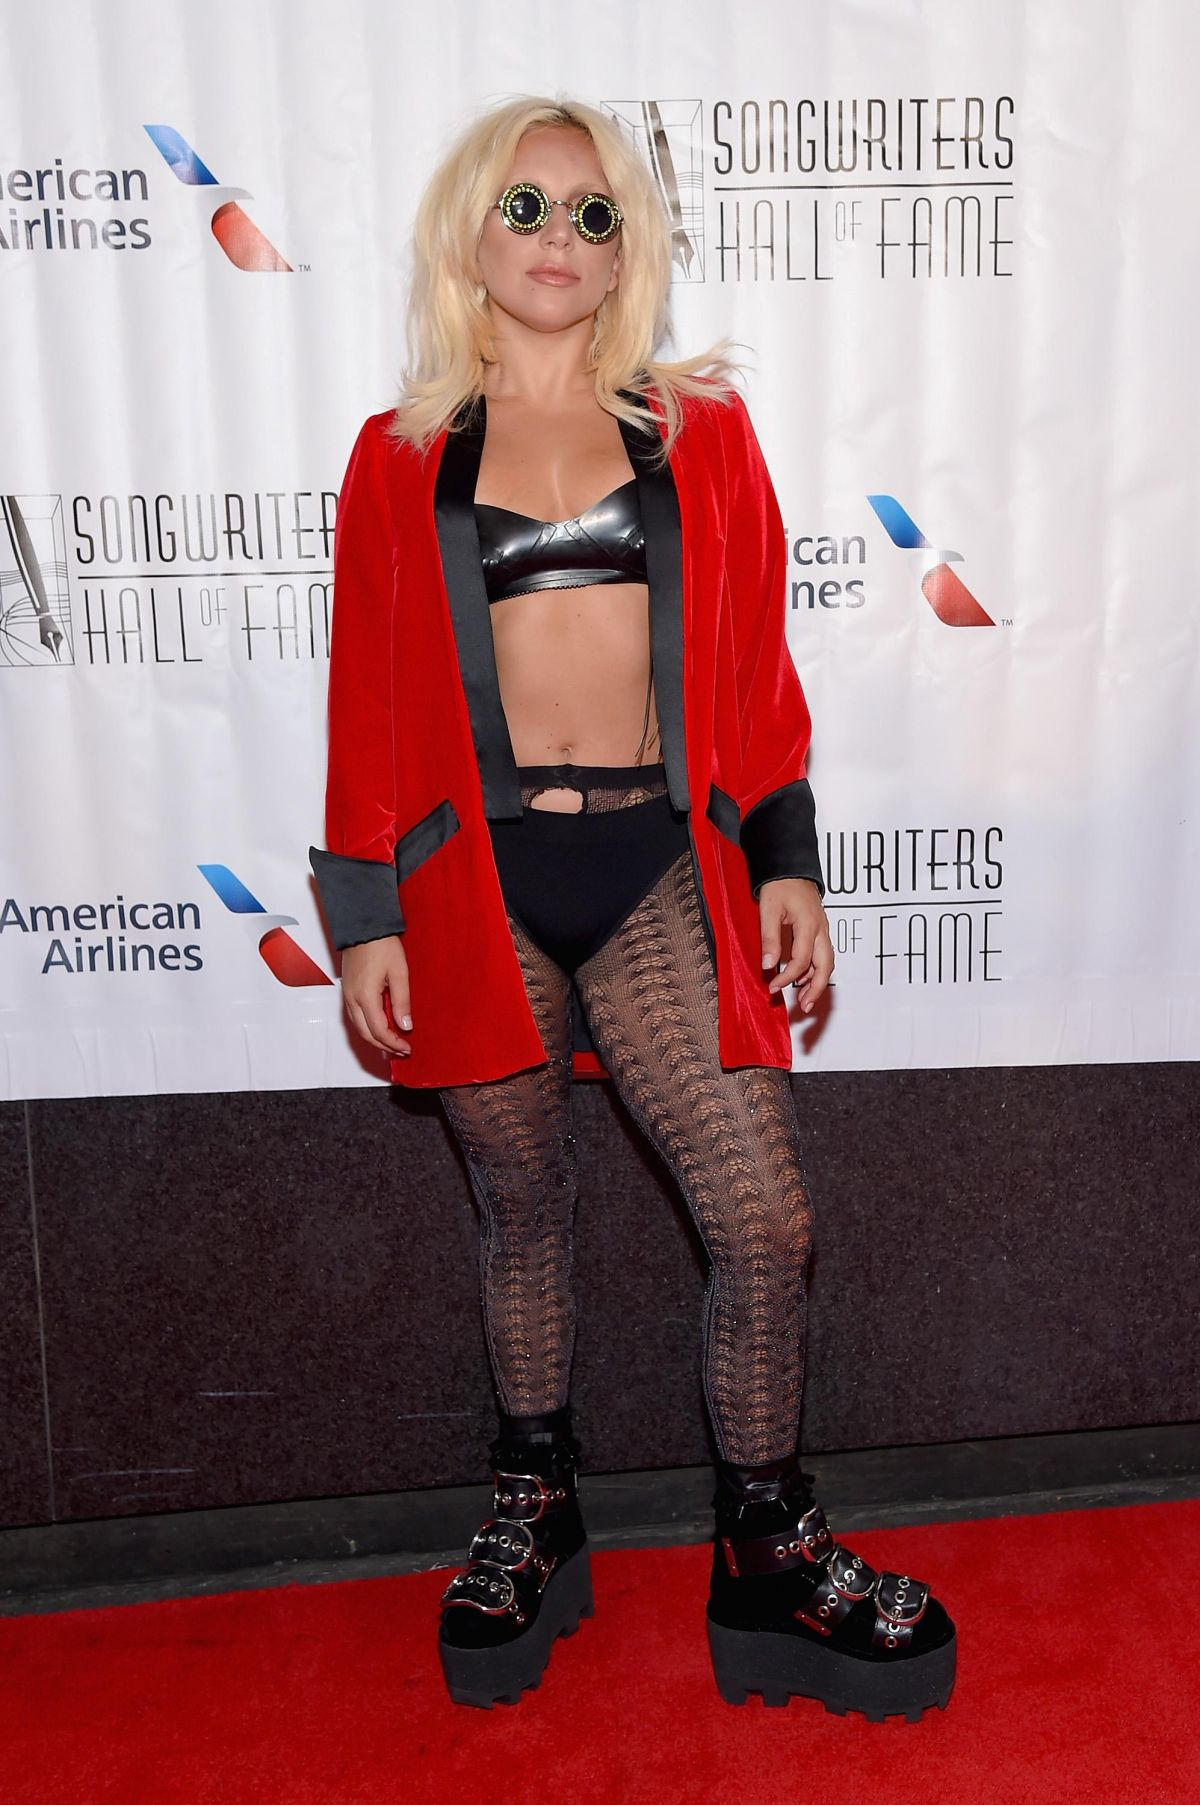 LADY GAGA at Songwriters Hall of Fame in New York